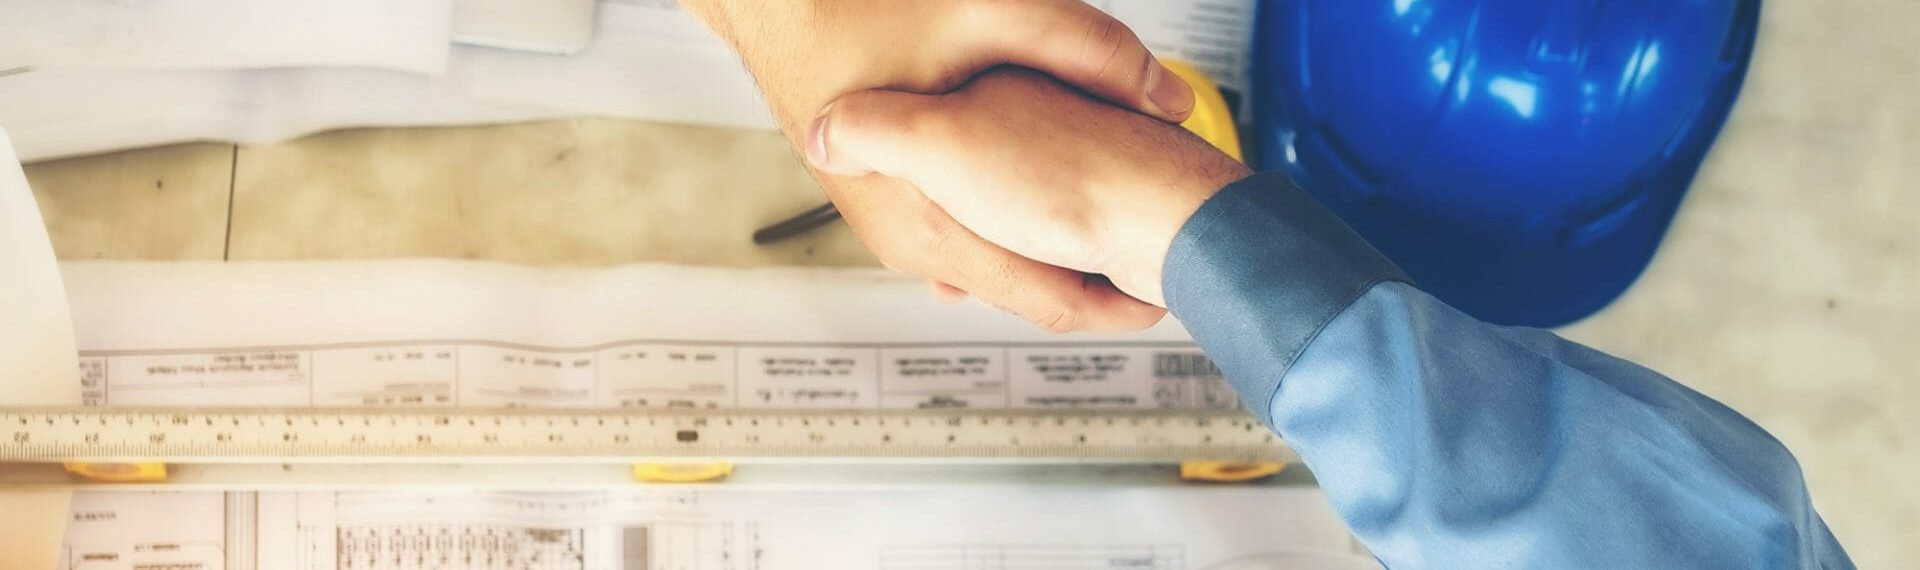 A tradesman's guide to launching a self employed business